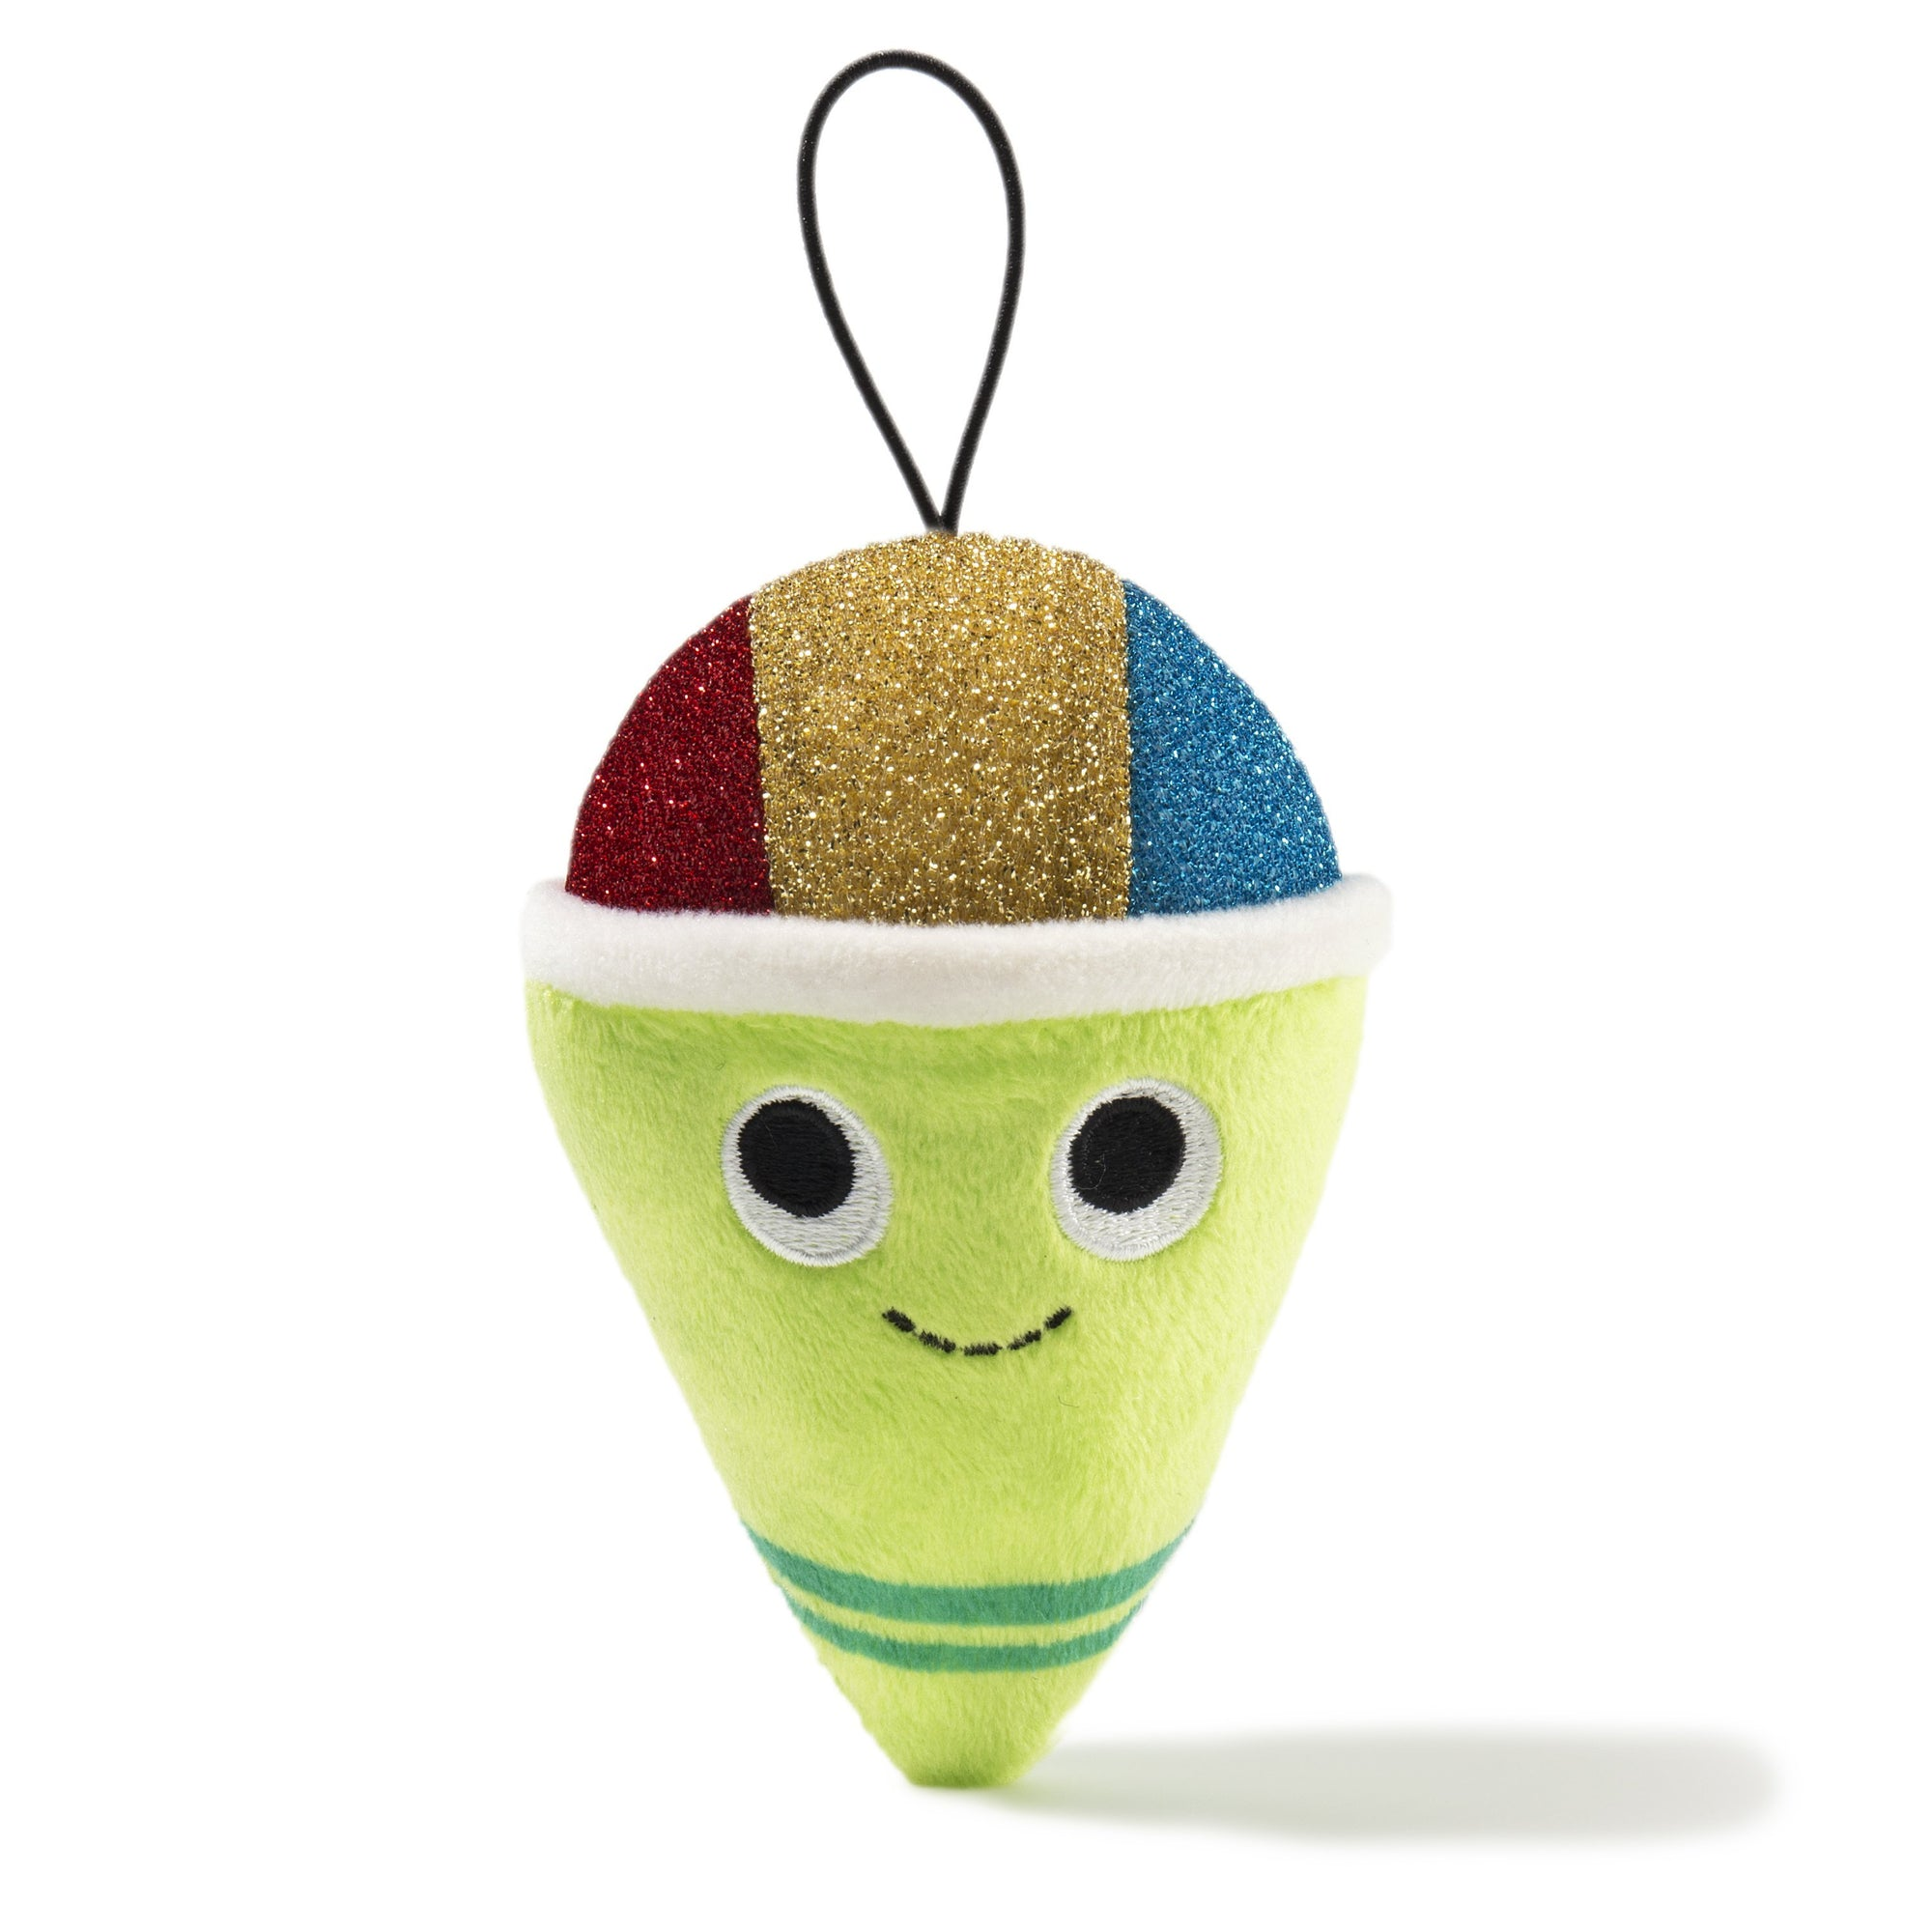 Yummy World Small Snow Cone Plush - Kidrobot - Designer Art Toys